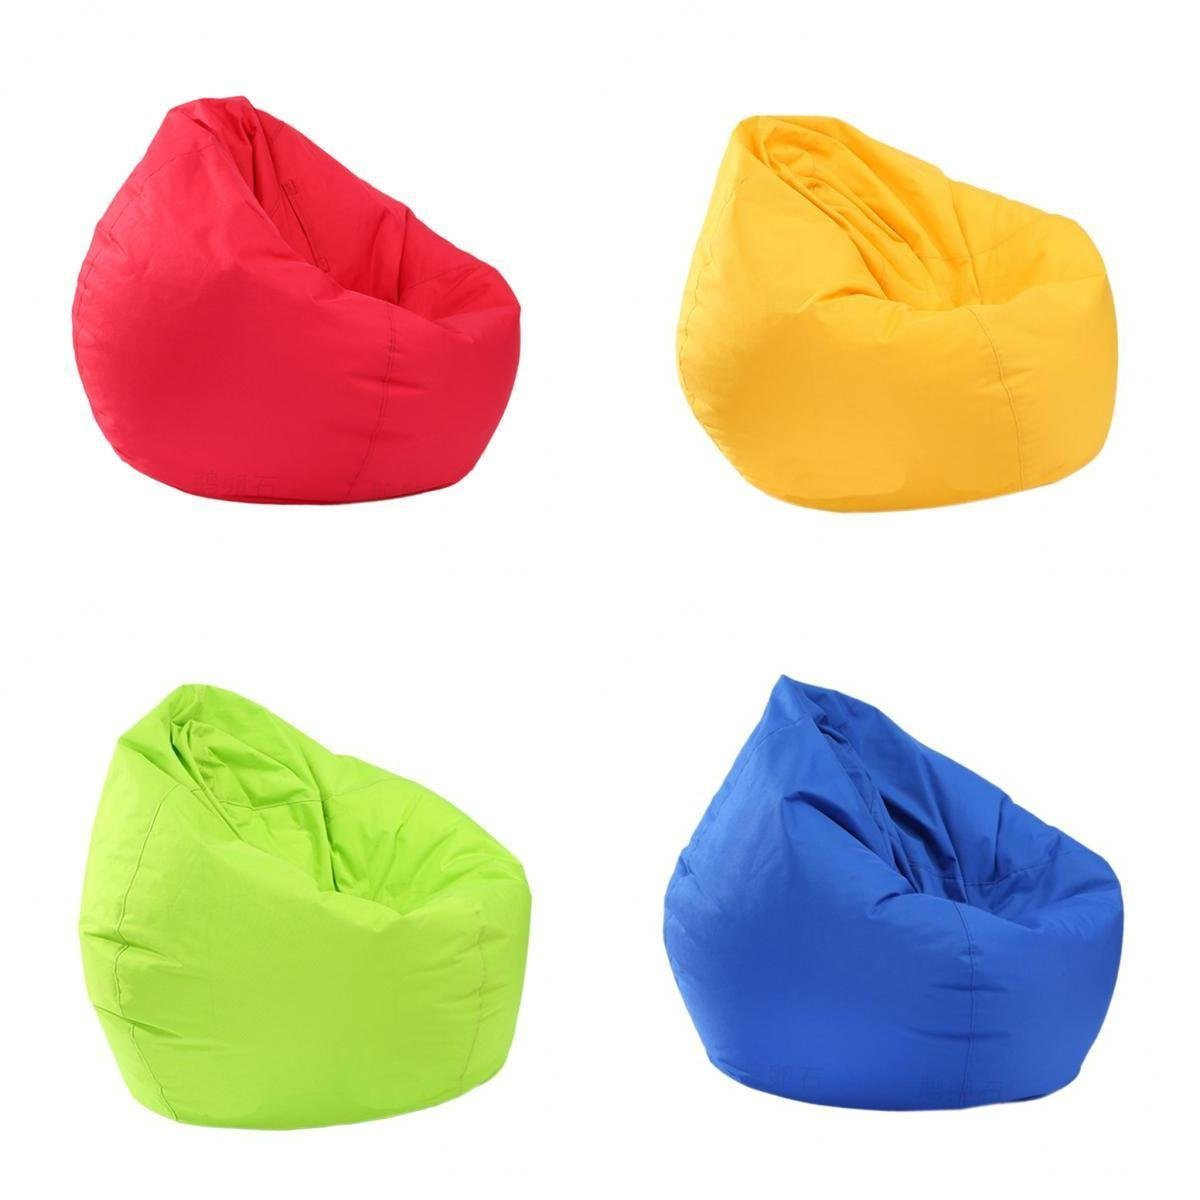 B Blesiya 4Pieces Red & Yellow & Blue & Green Extra Large Kids Stuffed Animals Storage Bean Bag Chair Cover (Waterproof)